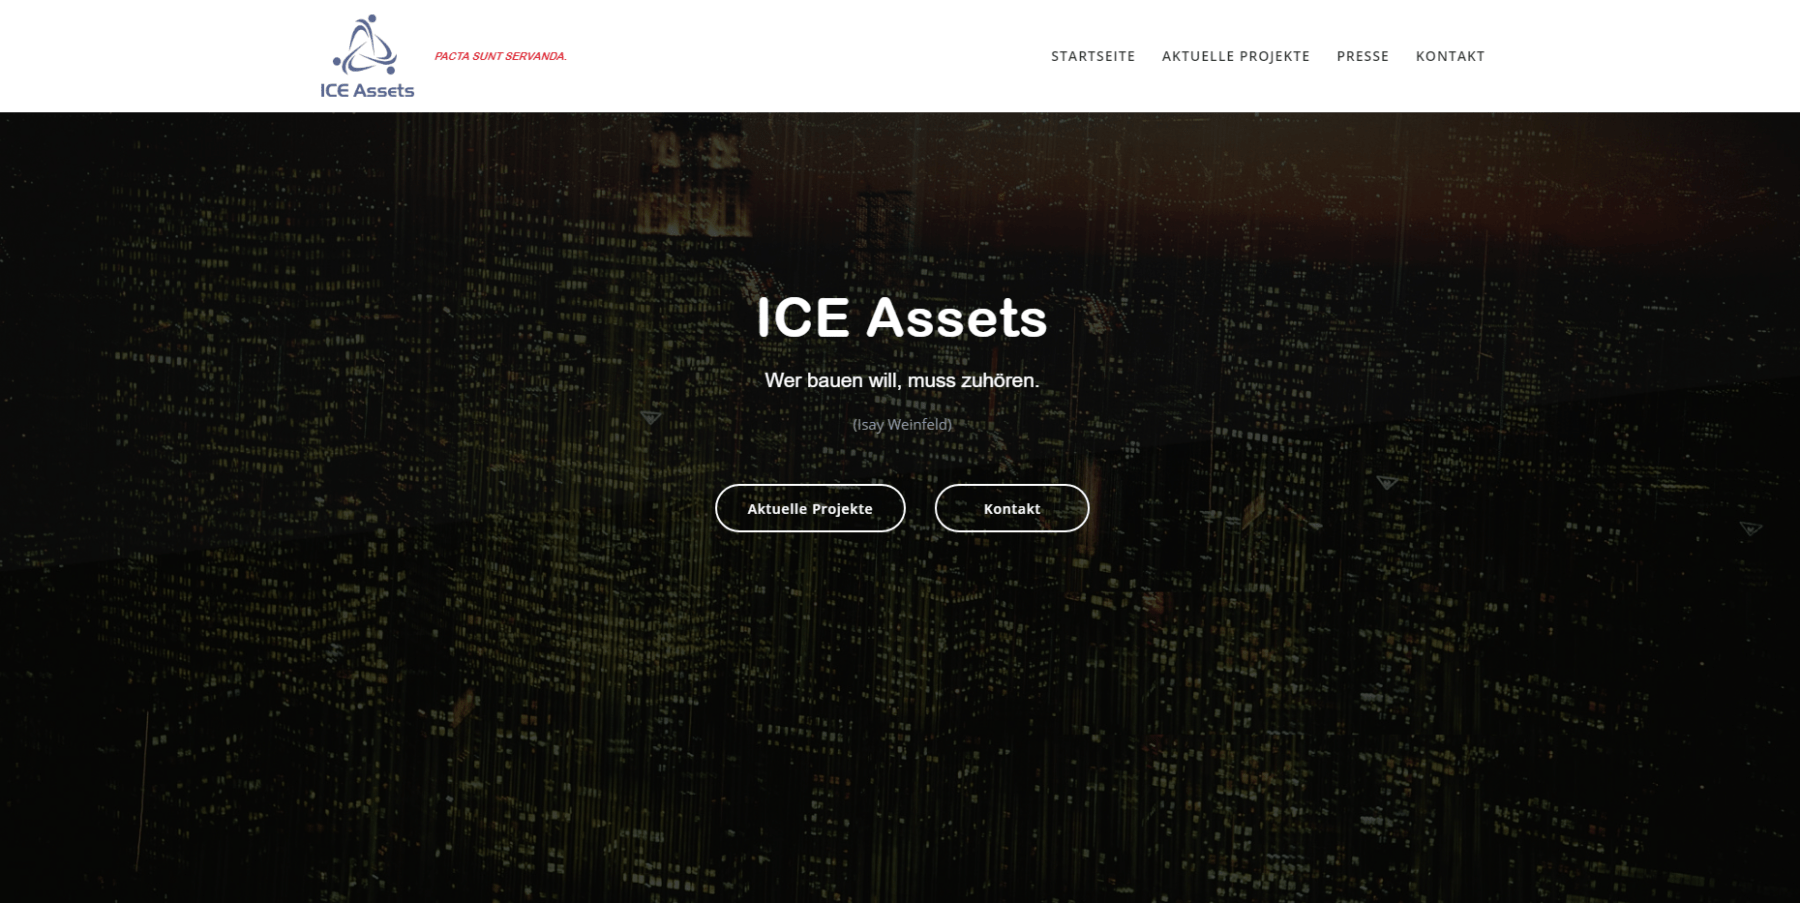 ICE Assets